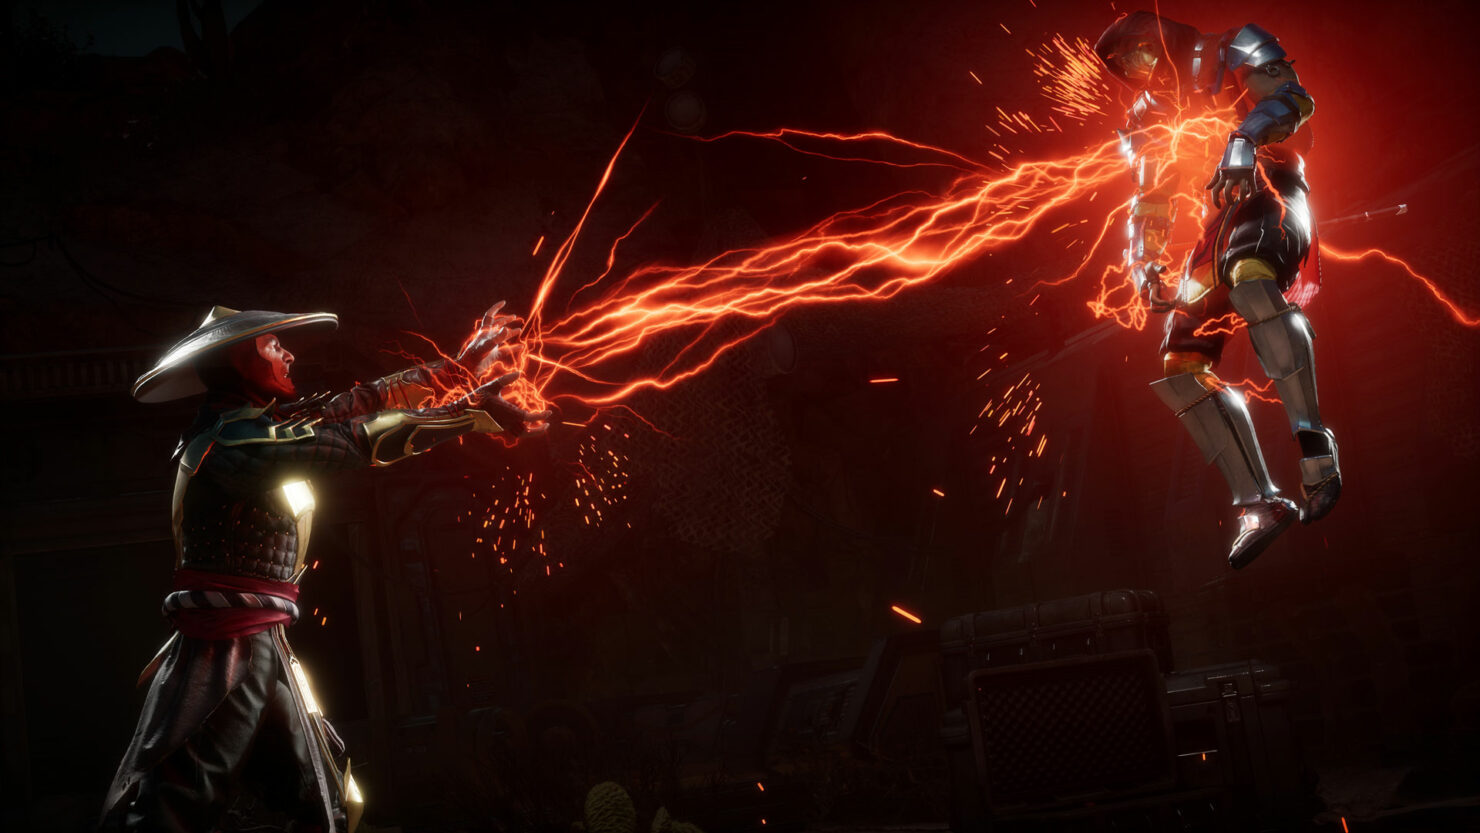 mortal-kombat-11-screenshots-4-1480x833.